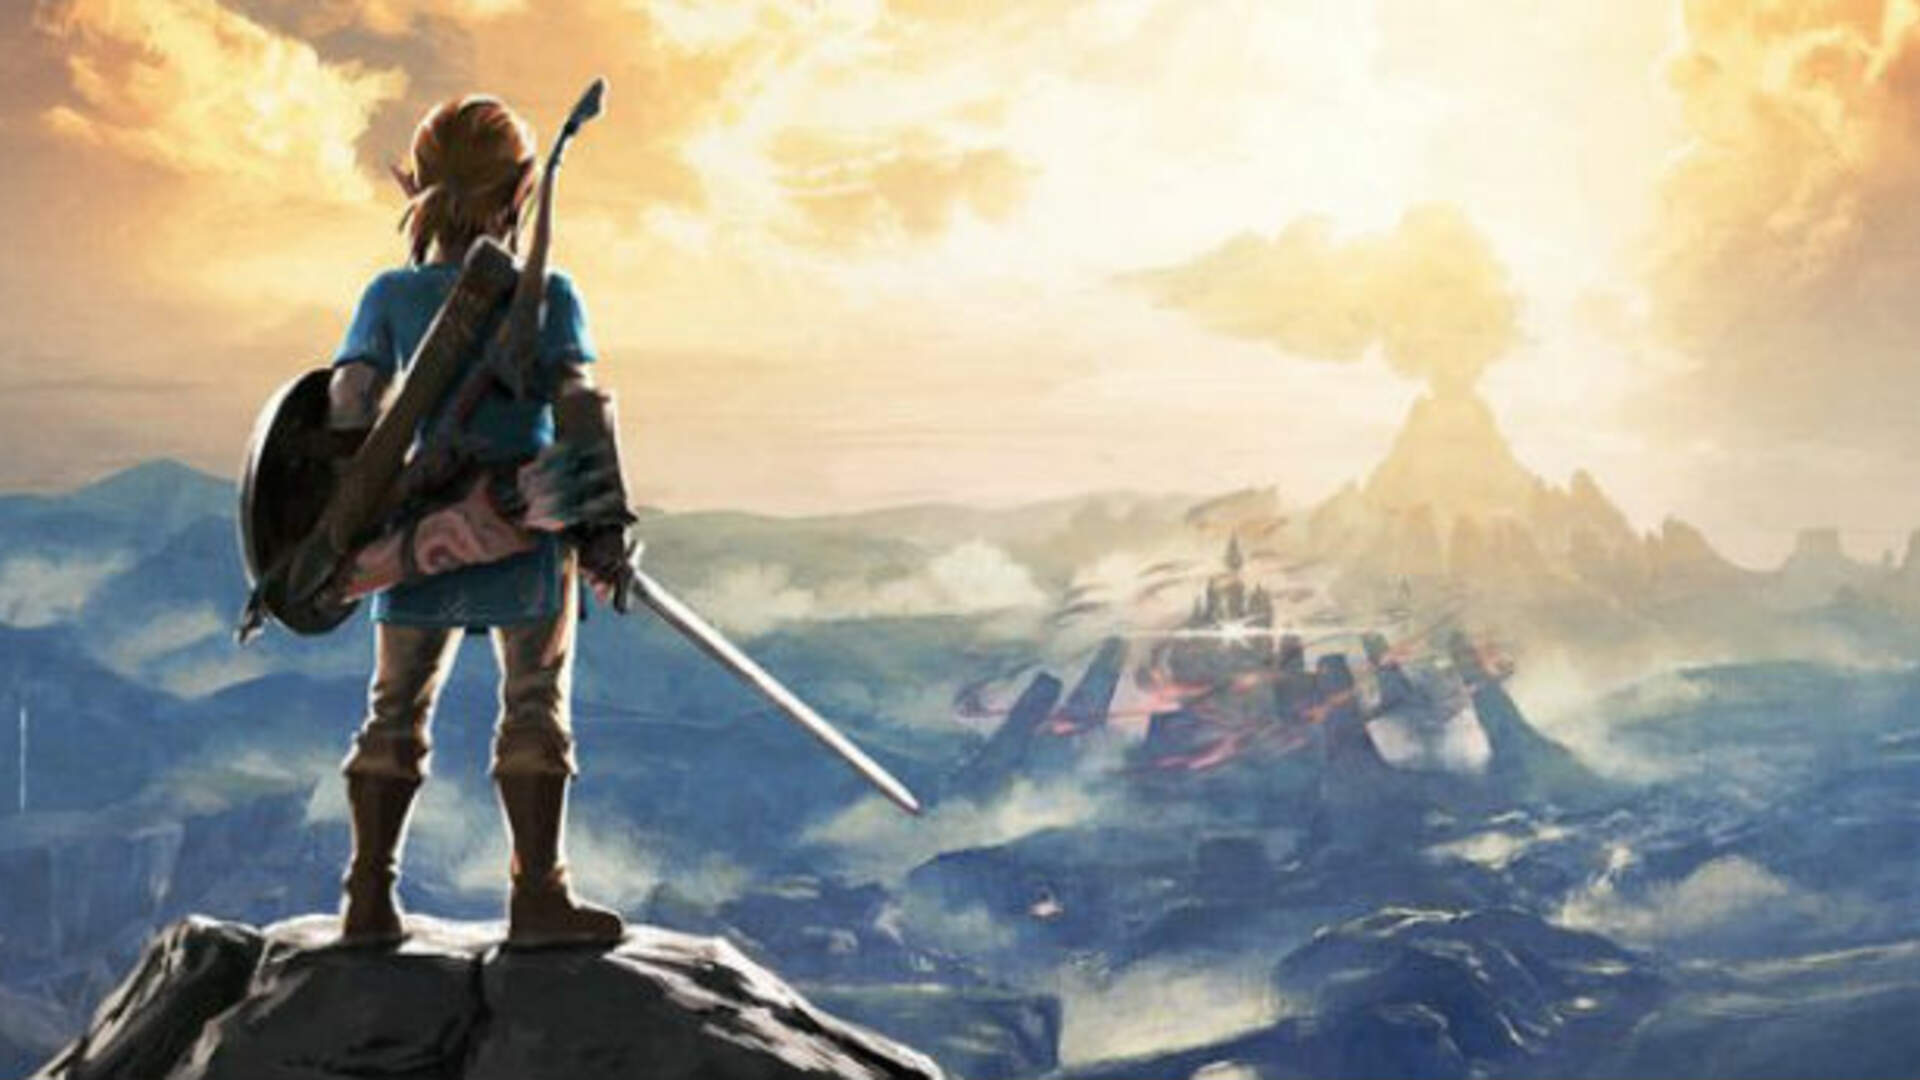 New Zelda: Breath of the Wild Info -- How Shrines Differ from Dungeons, and More